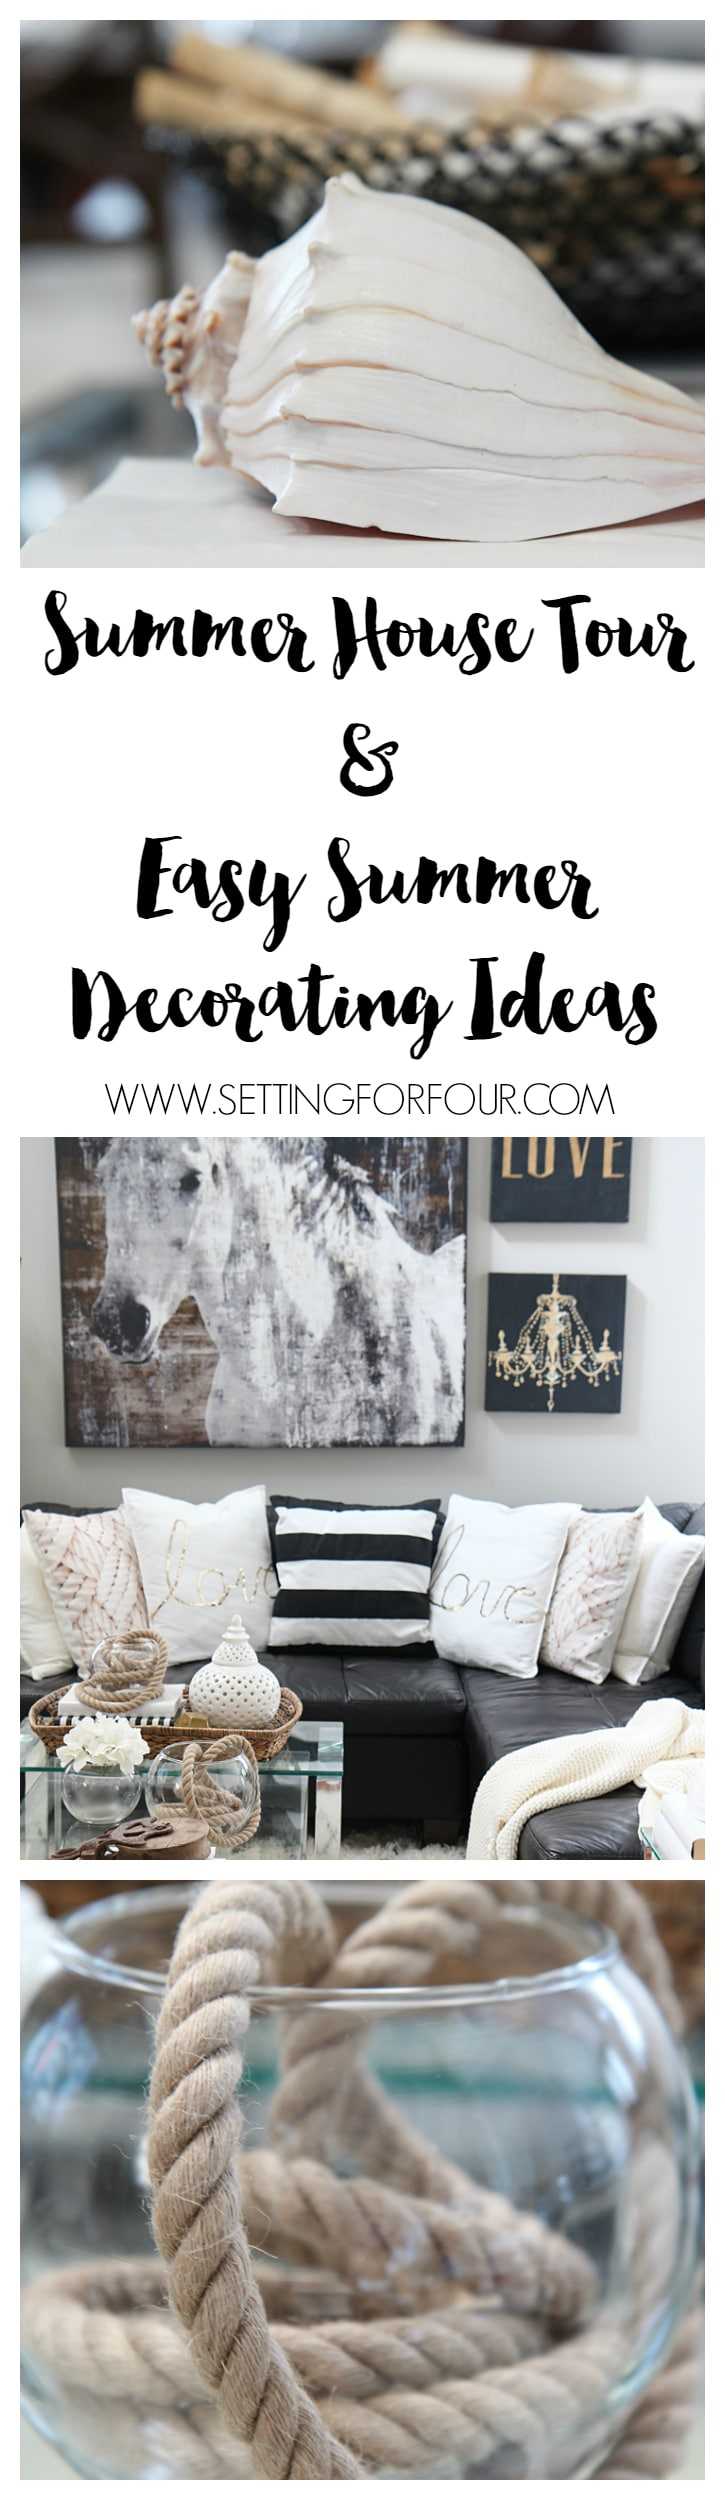 See my Summer House Tour and easy Summer Decorating Ideas! Happy Summer! www.settingforfour.com